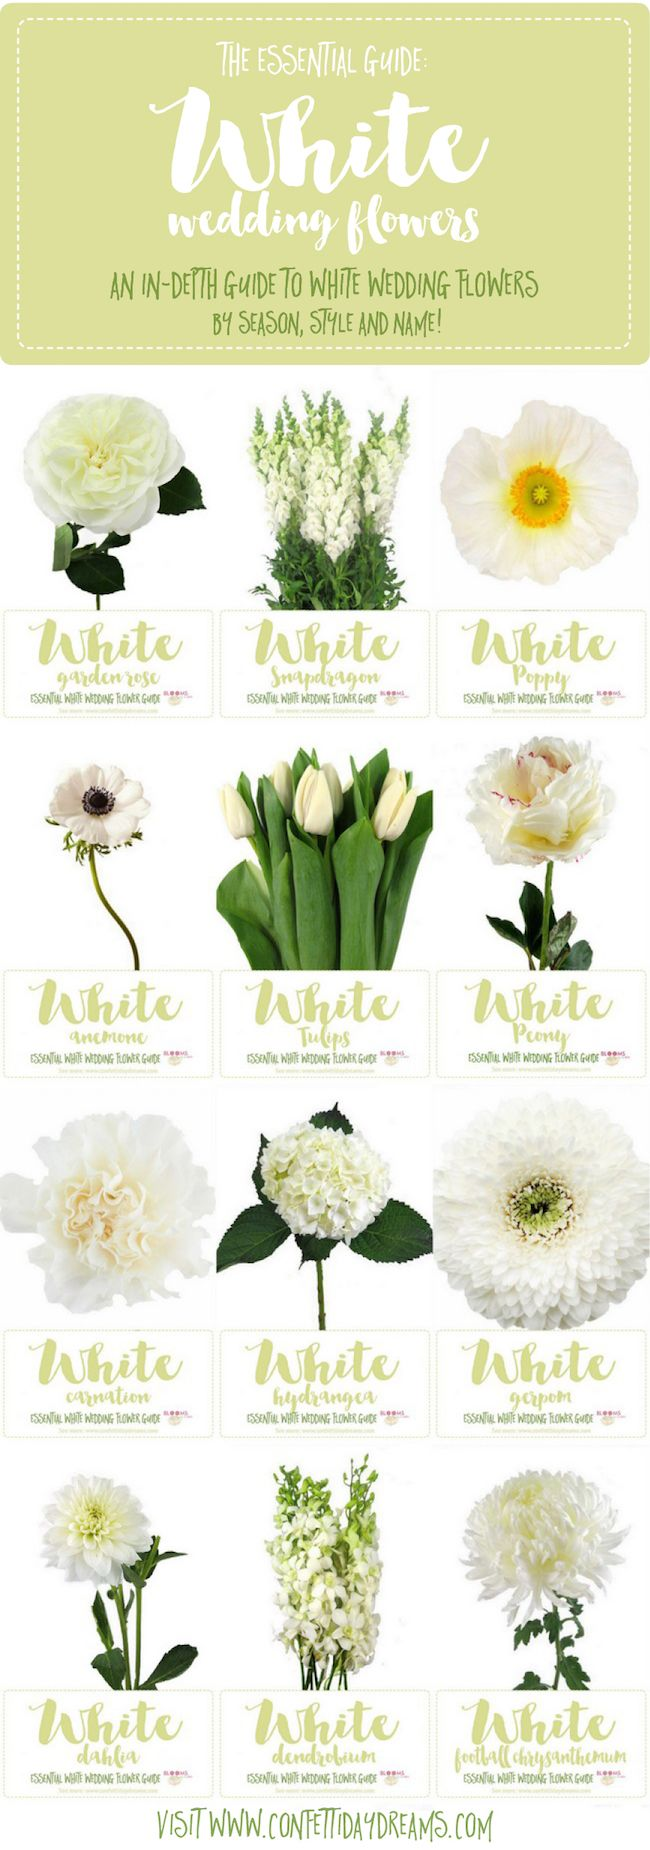 Essential white wedding flower guide names types pics wedding save this awesome in depth white wedding flower guide for names types of white flowers with pictures season style info via confettidaydreams mightylinksfo